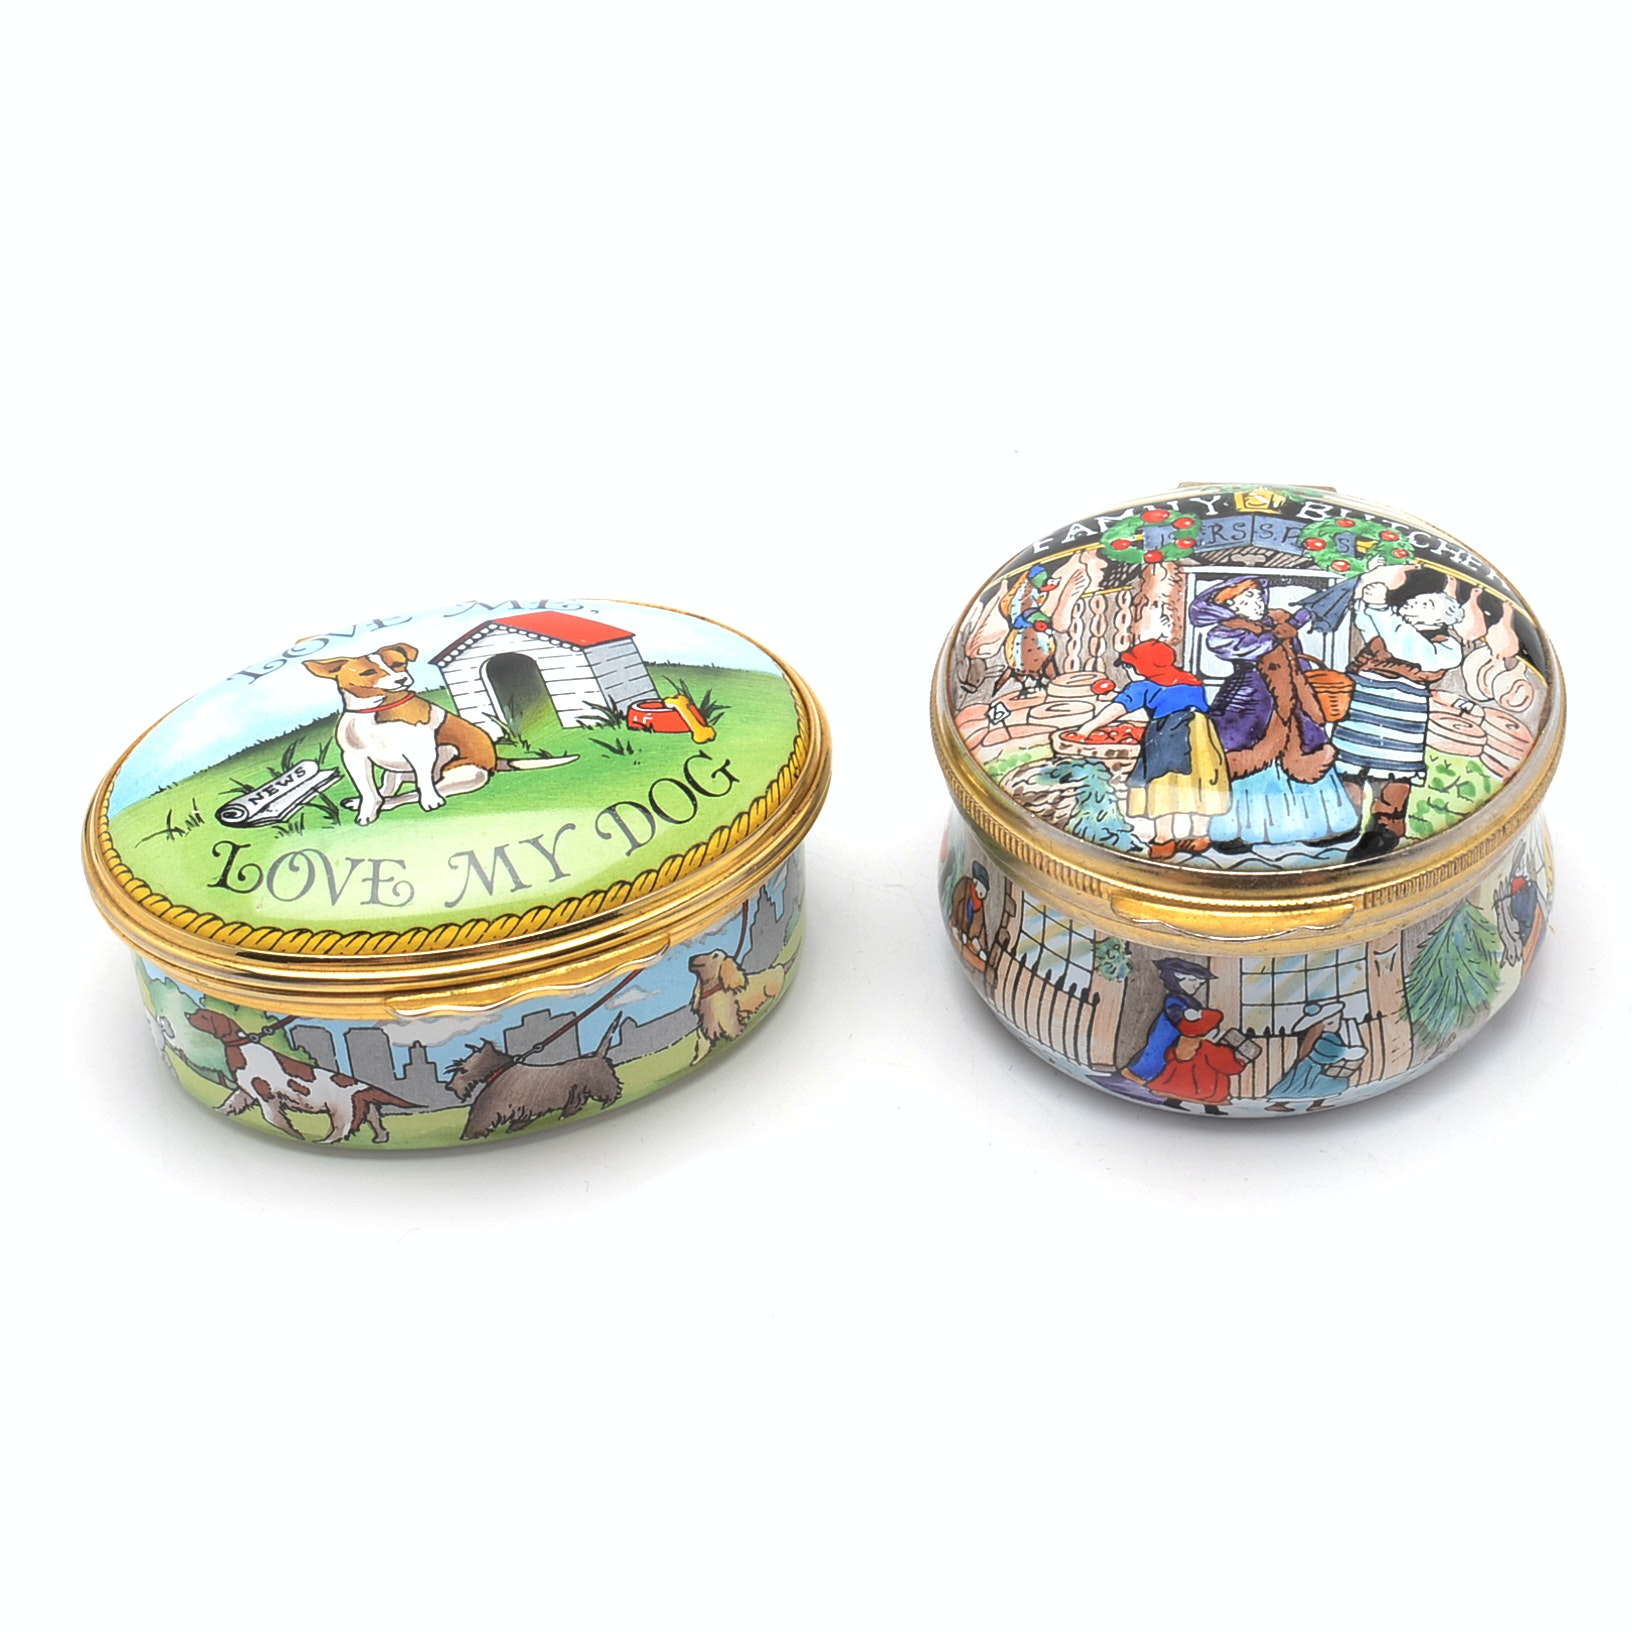 Collectible Enamel Trinket Boxes, Including Halcyon Days Enamels